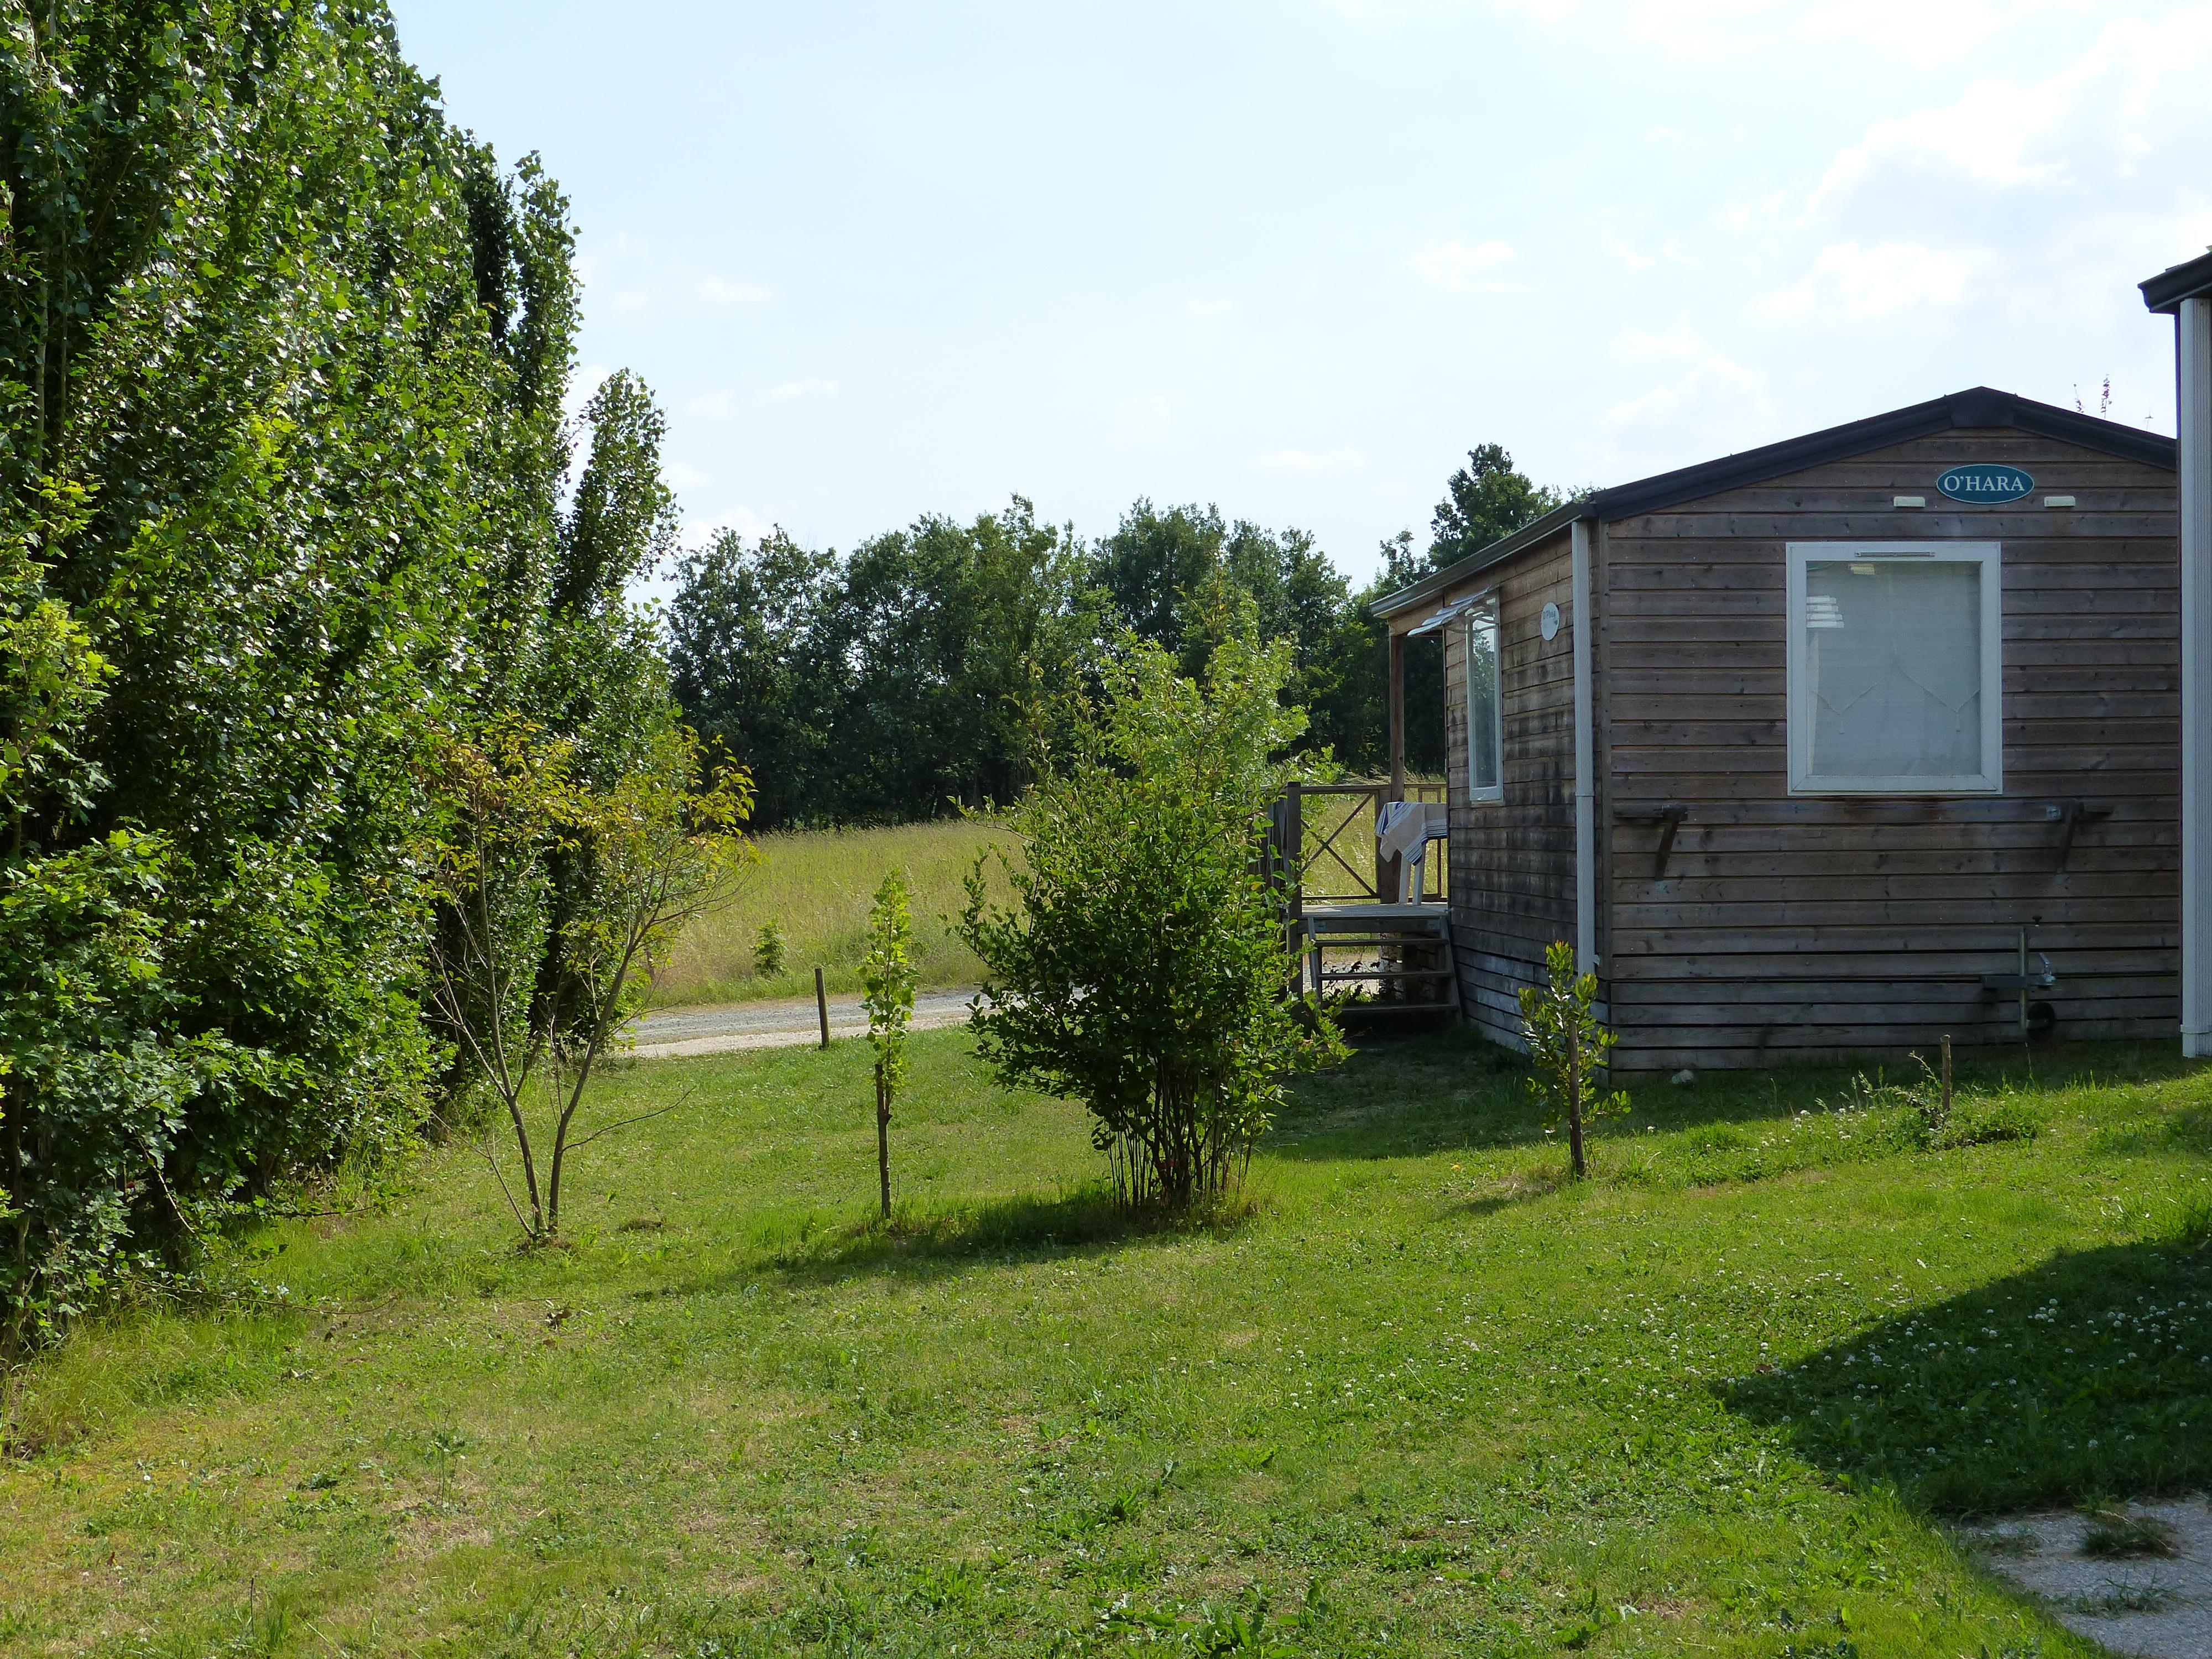 Locatifs - O'hara 6 Places Avec Terrasse Couverte - Camping Le Chemin Vert